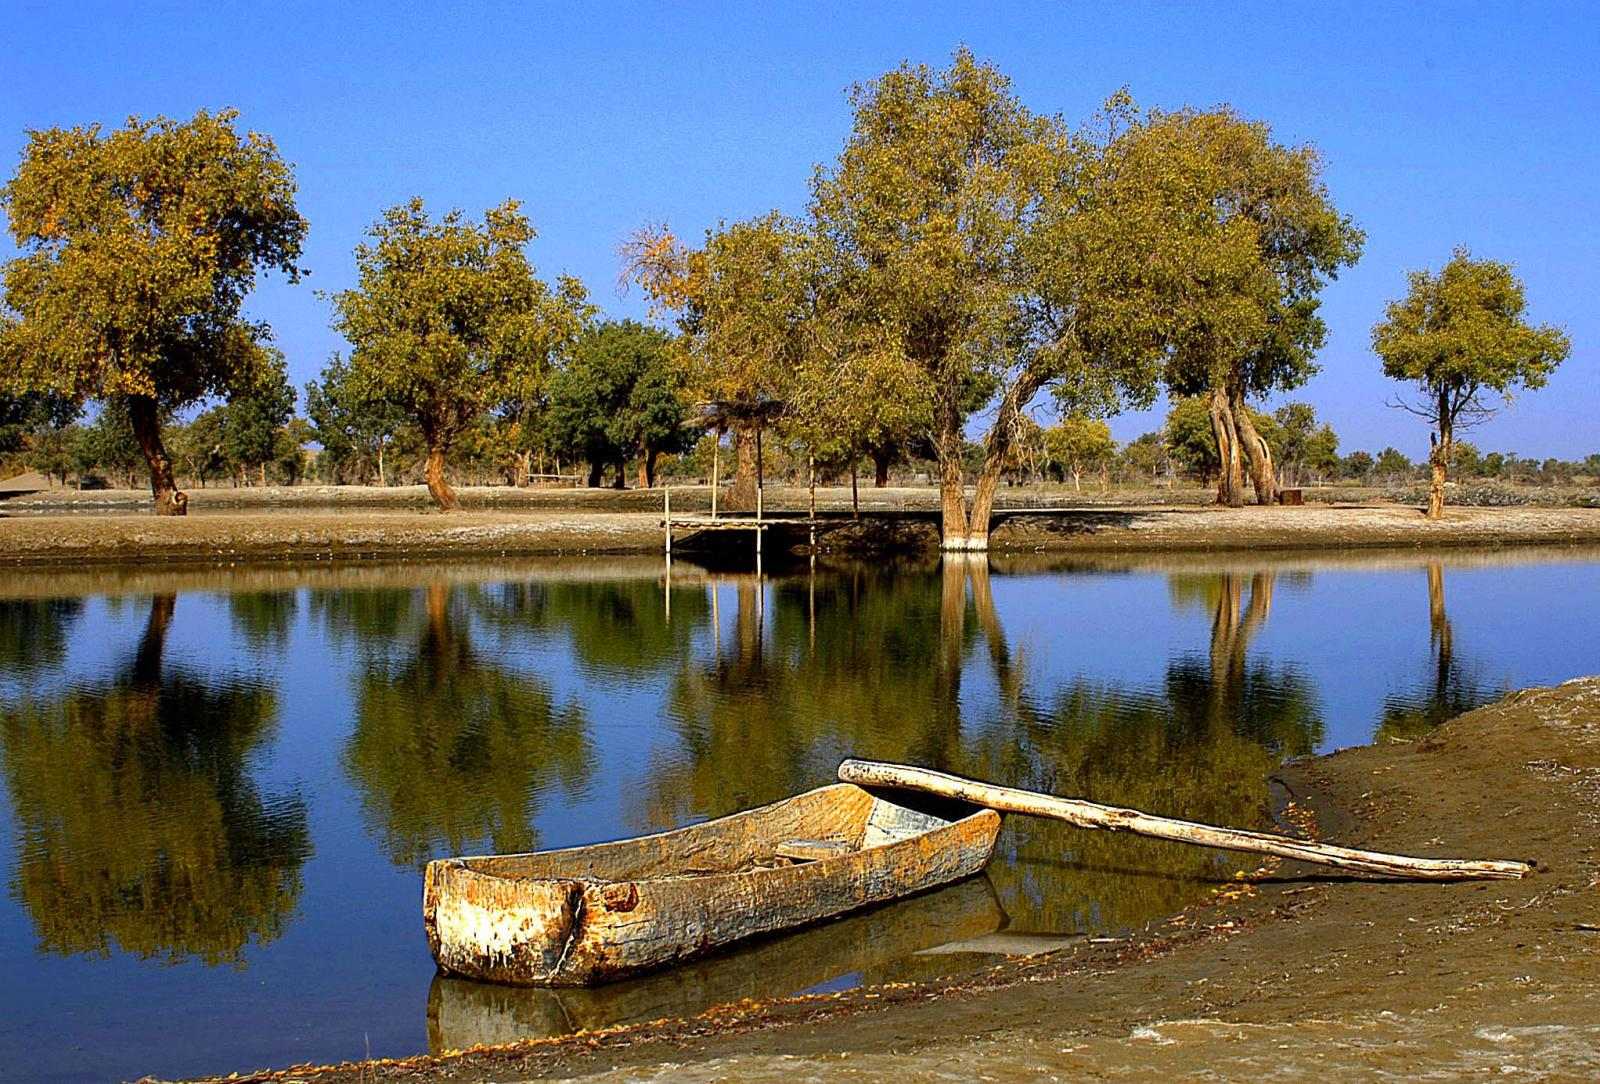 Wooden Boat on River